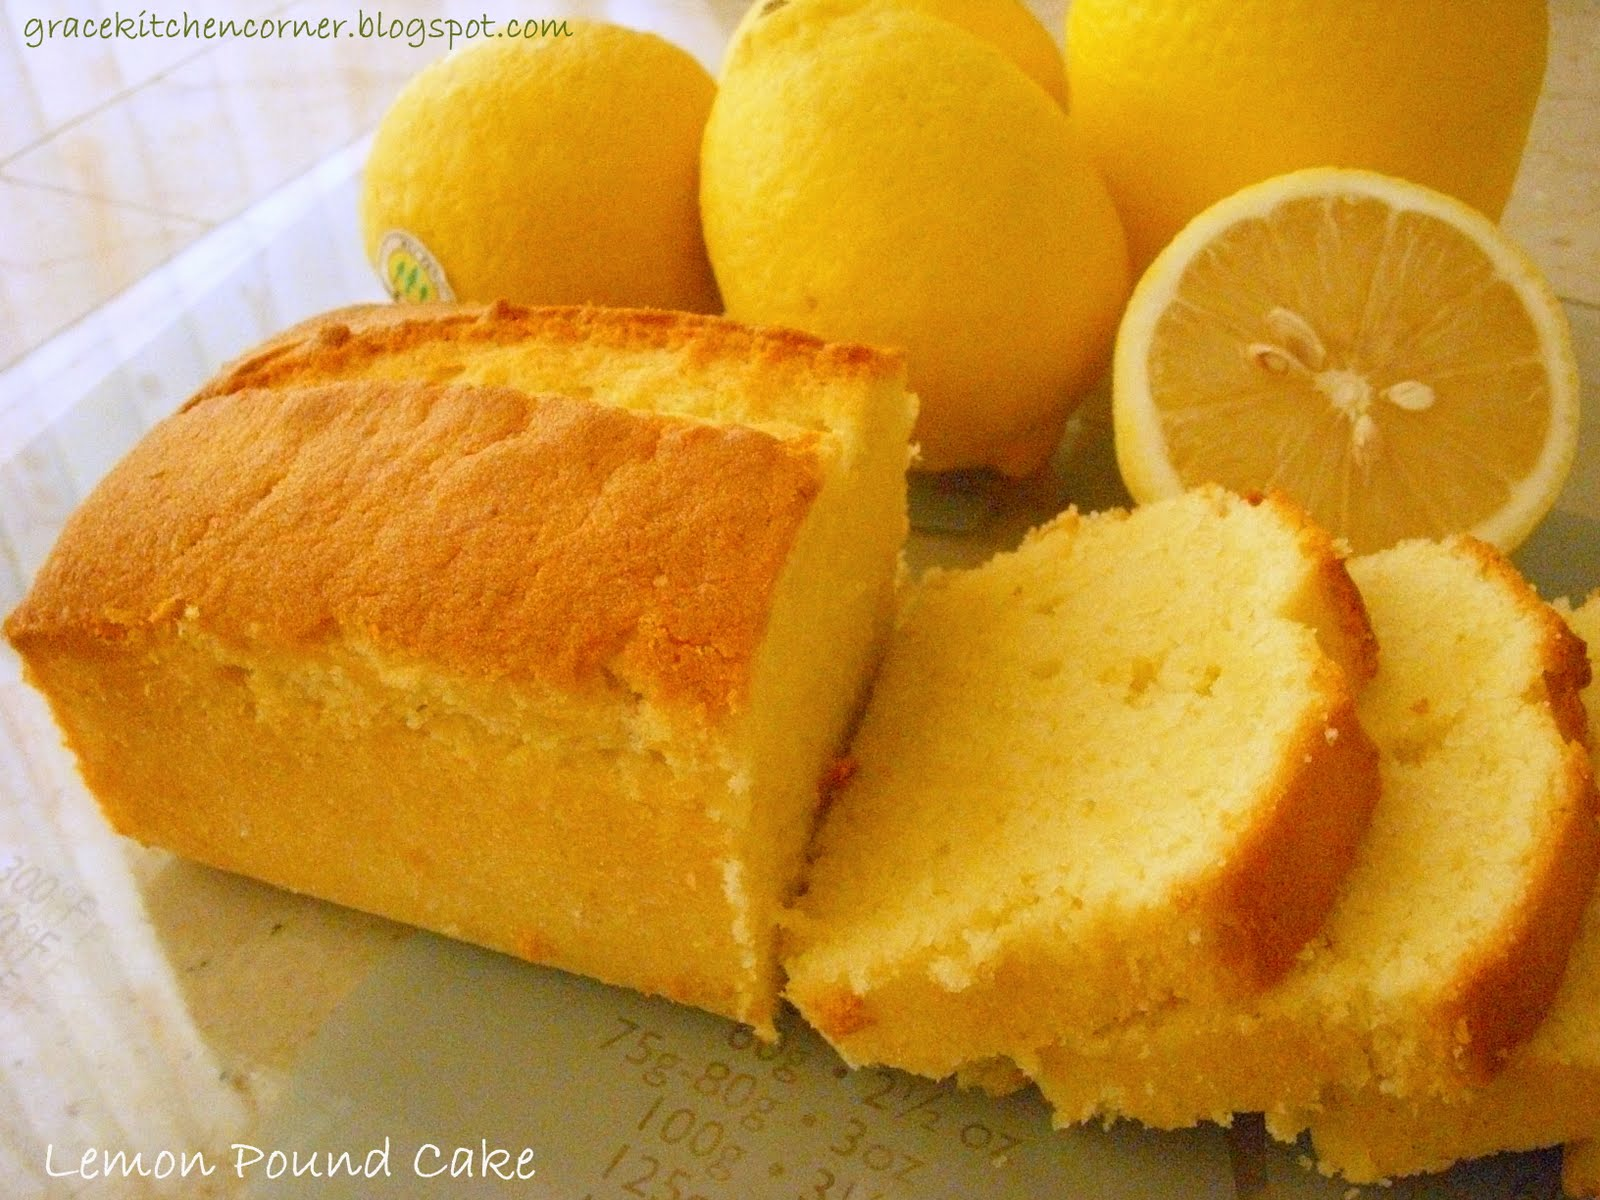 Kitchen Corner: Lemon Pound Cake